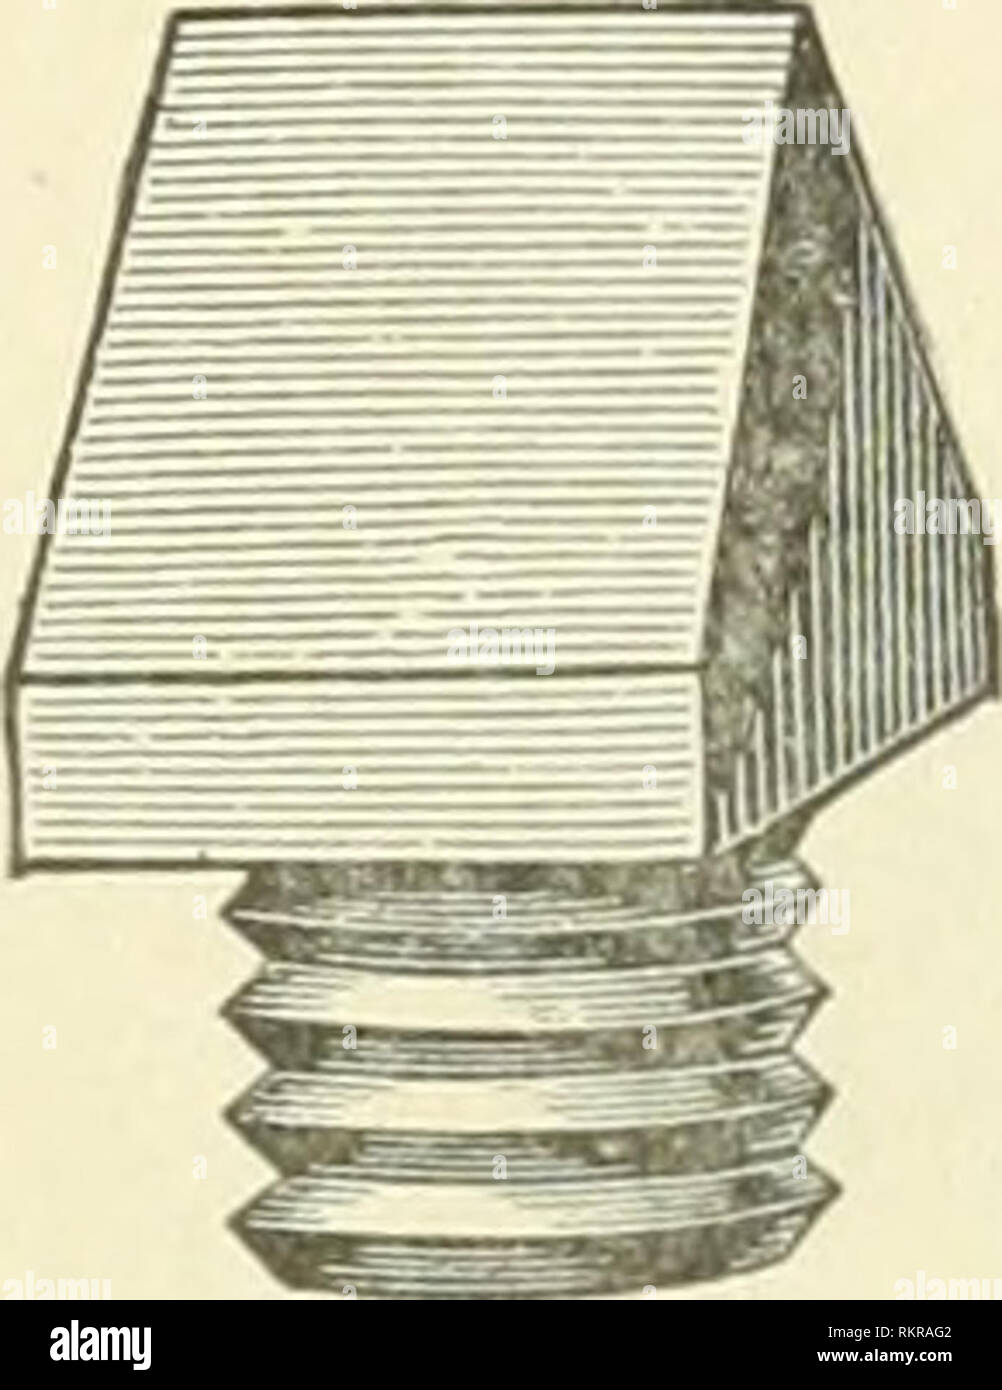 """. The art of horse-shoeing : a manual for farriers. Horseshoeing. -Steel sharps, screw. worked into each hole to clear the thread. One great objection to this method is that as the shoe wears, it becomes thiniier, and if much worn, the shank of the """"sharp"""" may be too long, and when screwed home, cause pressure upon the hoof and consequent lameness. To guard against this, steel """"blanks"""" are used to pre- serve the holes, and when a frost comes, they are removed and the """" sharps """" put in. The blanks vary in height, and, of course, those least in height are best for t - Stock Image"""